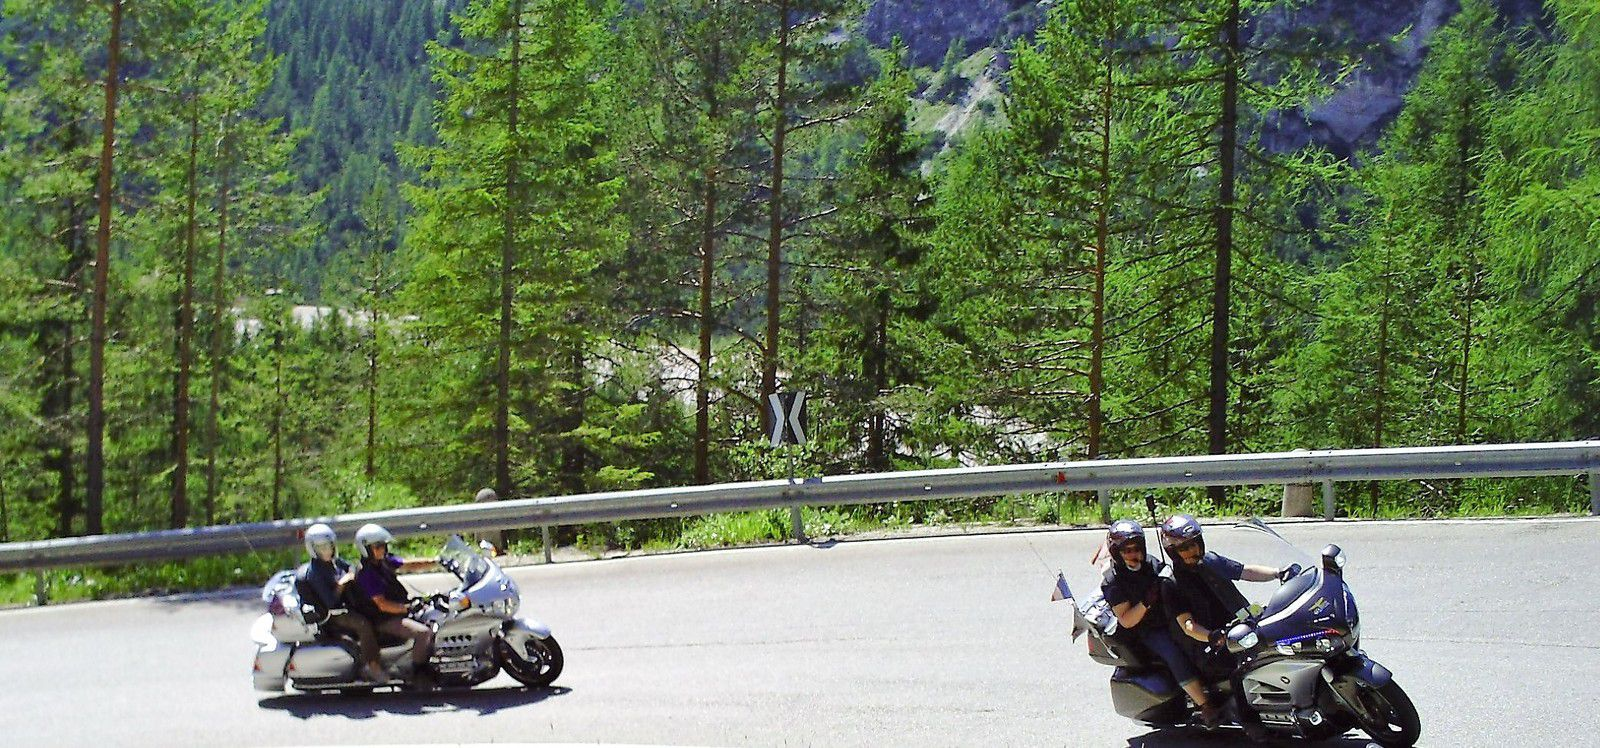 Goldwing Unsersbande - Périple Dolomites et Cinque terre 5th day Laggo Misurina et Cortina d'ampezzo